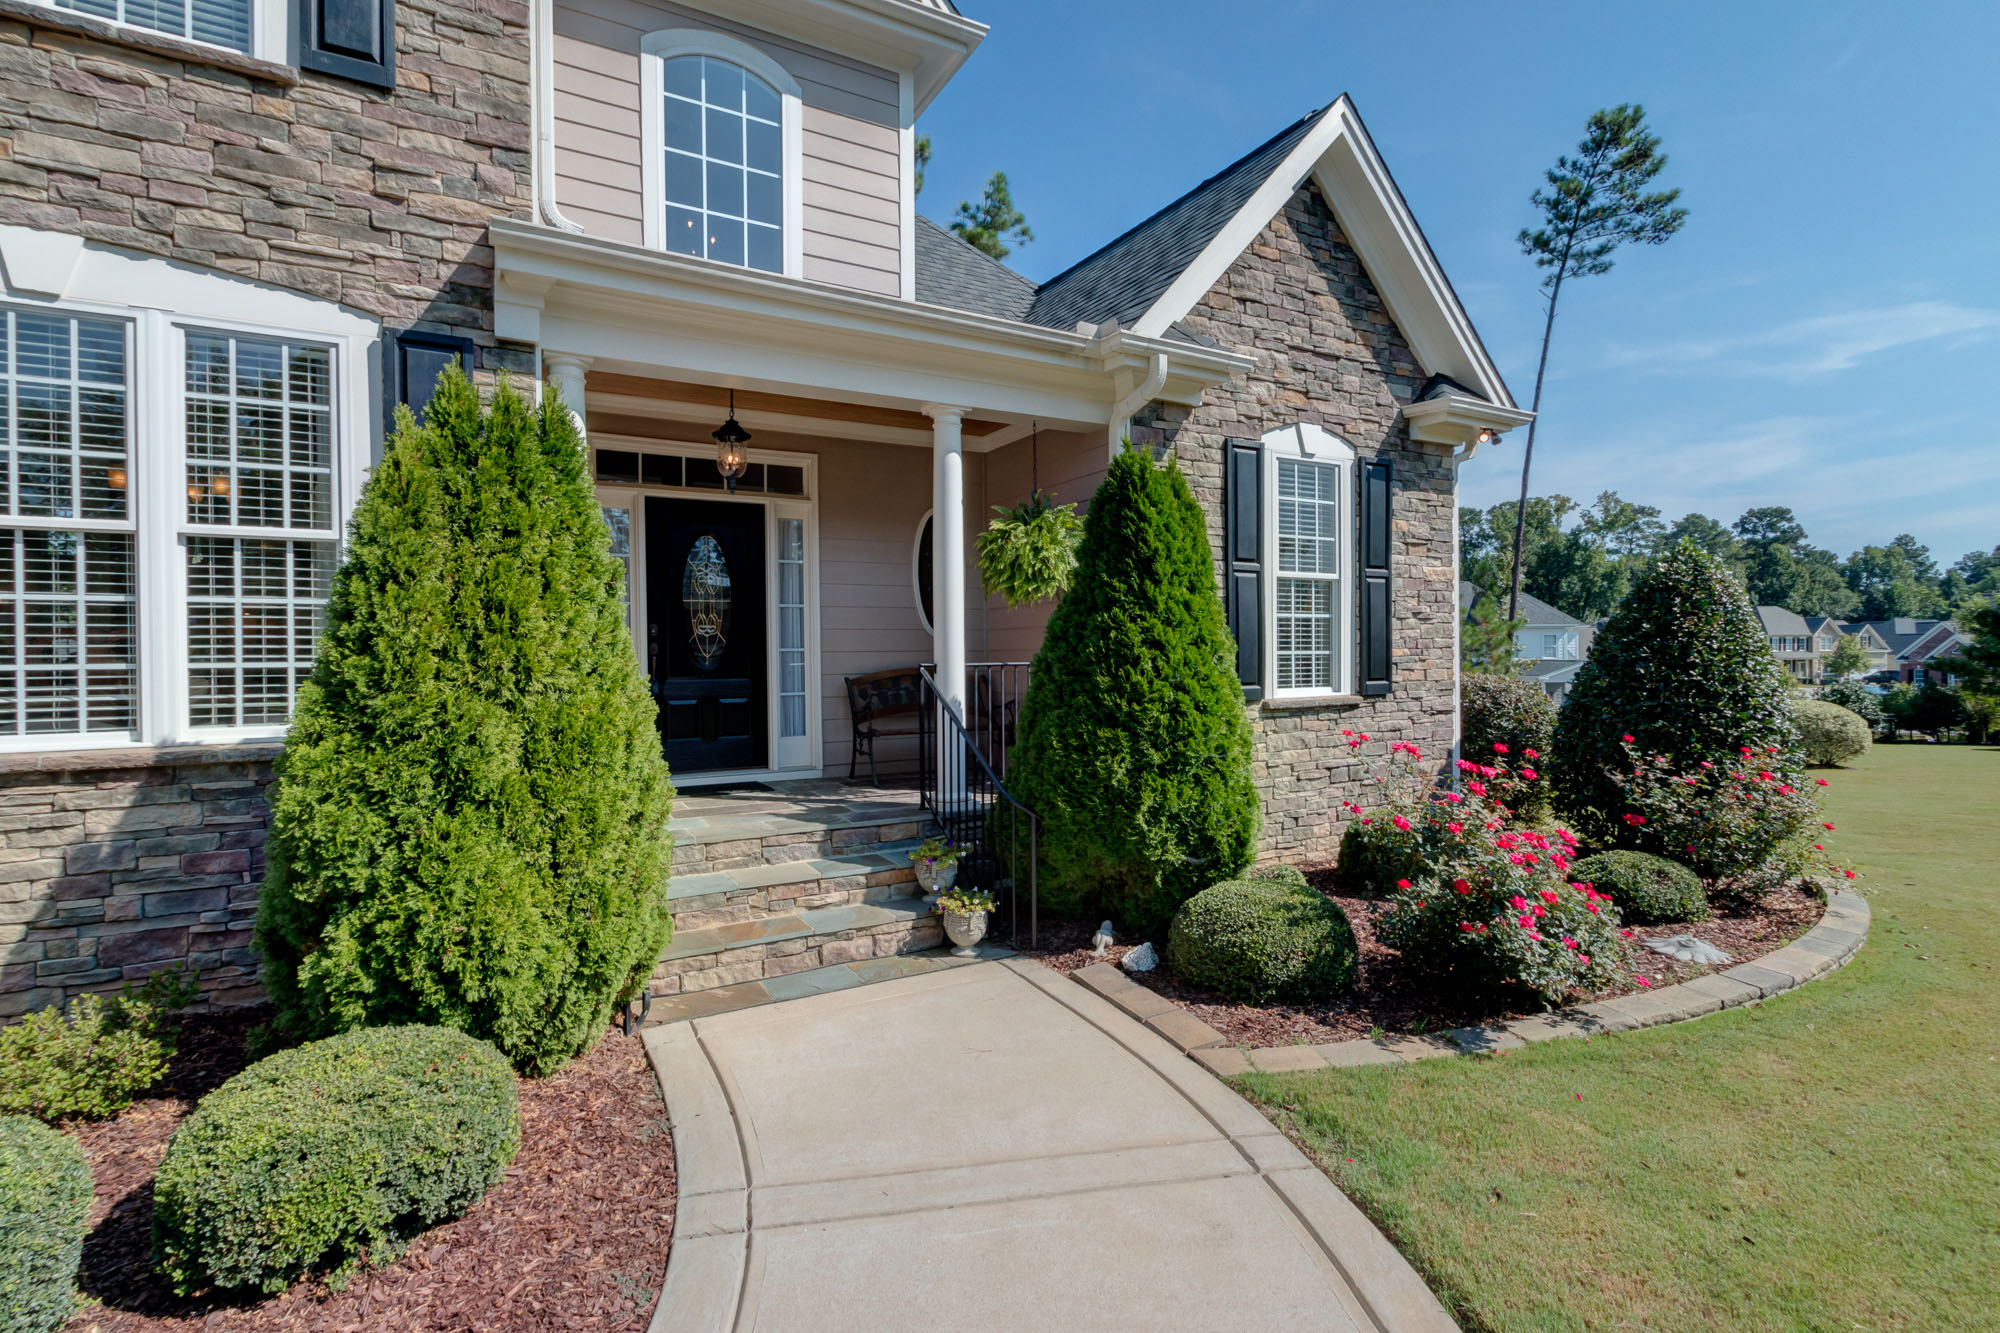 Real Estate Photography: Elegant Home Exterior in Garner, NC